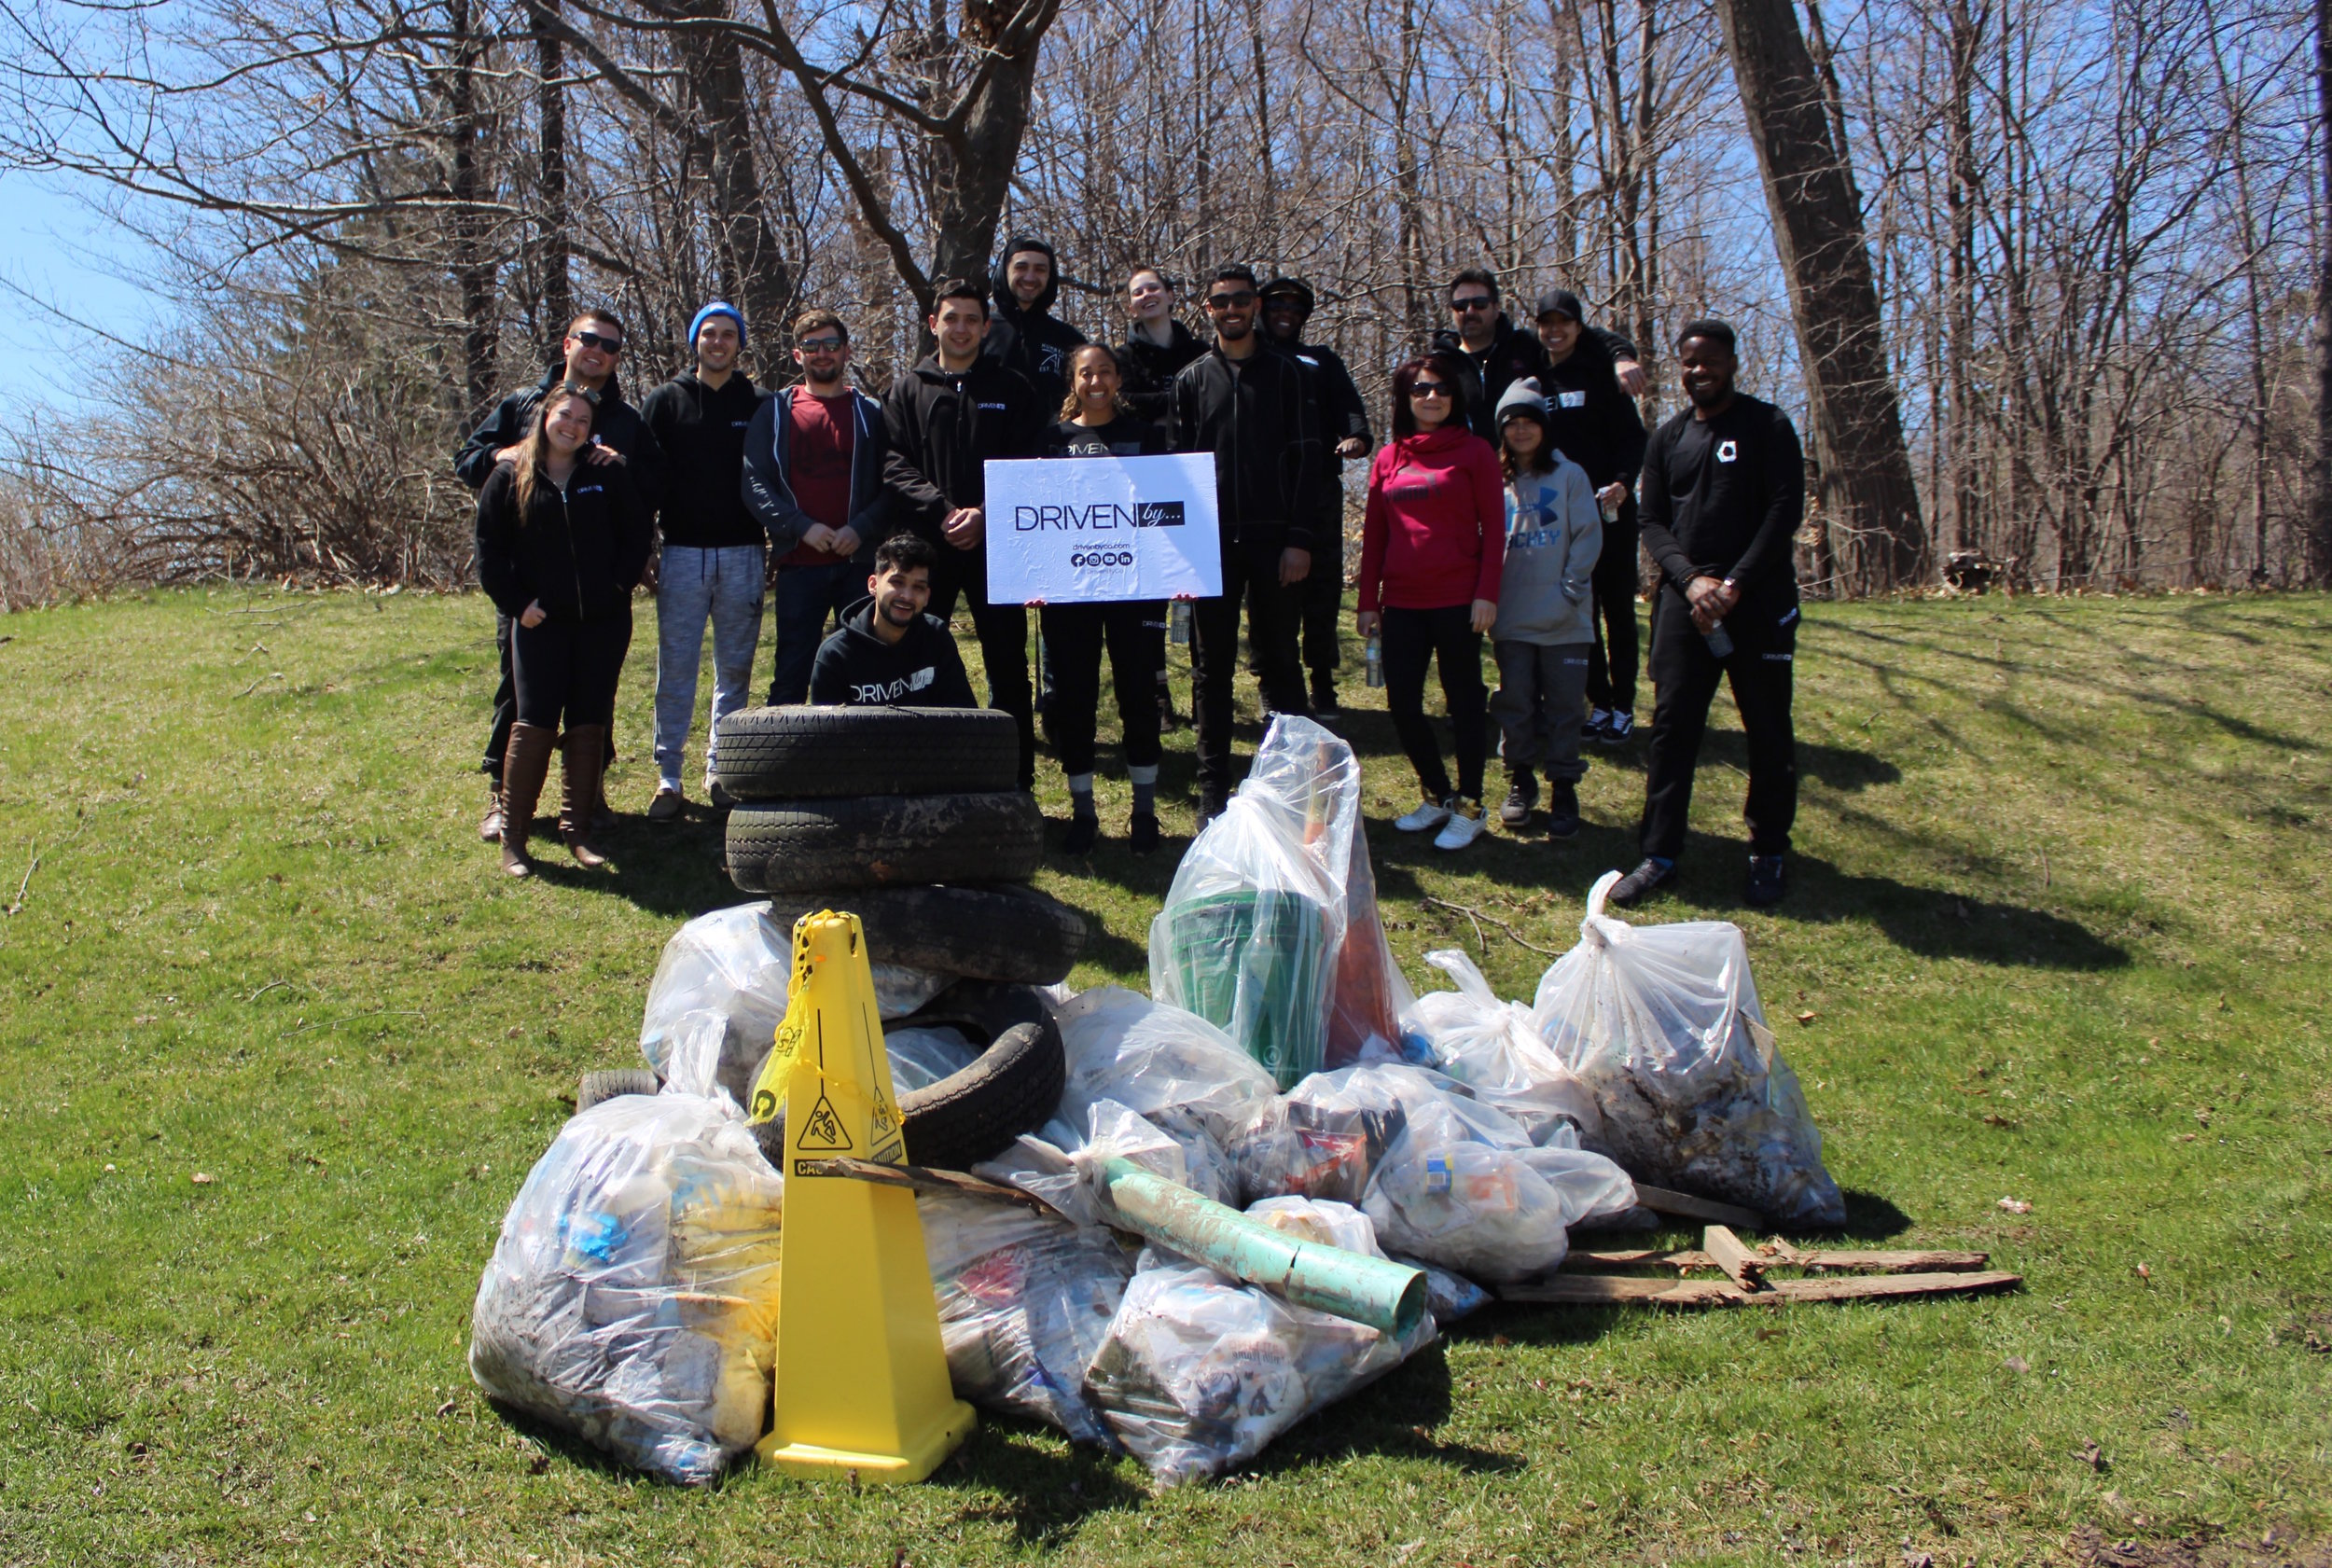 Driven By… Adopt-A-Park Initiative - Our first park clean up as part of the Driven By… Adopt-A-Park Initiative was a great success! On April 28th, 2019, our team of volunteers met at Erin Mills Twin Arena excited to clear the park of litter! Put into teams of two and spreading out to cover the park, we were surprised at the objects we found! From full sets of tires, plastic buckets, hundreds of cigarette butts, plastic poles, food wraps, beer bottles, styrofoam and so much more! This reminded everyone to be more conscious of disposing of litter properly.  As a team, we collectively picked up 399lbs of garbage! Everyone was shocked at how much garbage there was and how much we were able to collect in a short period of time!  Thank you to everyone who came to help make a difference!   We will see you at the next park clean up day!